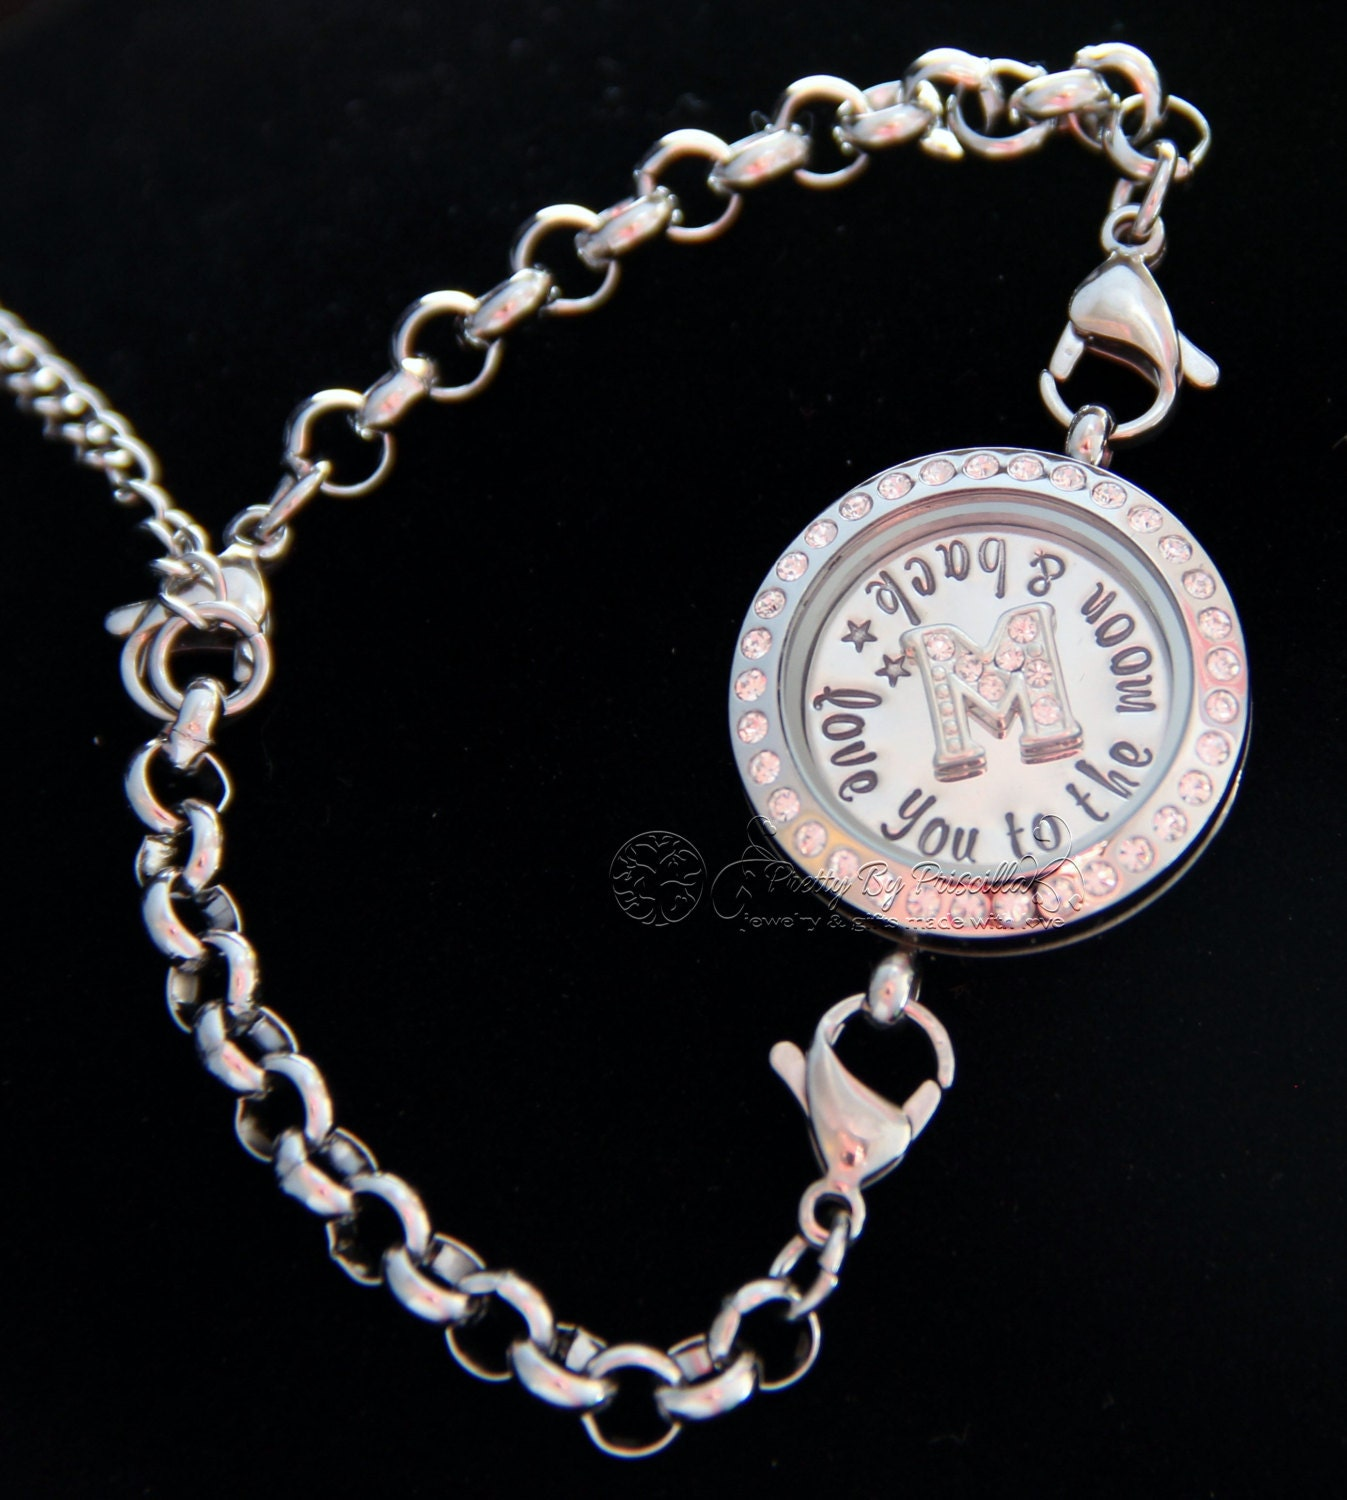 pin bracelet necklace rose dangle gold chain and lockets locket